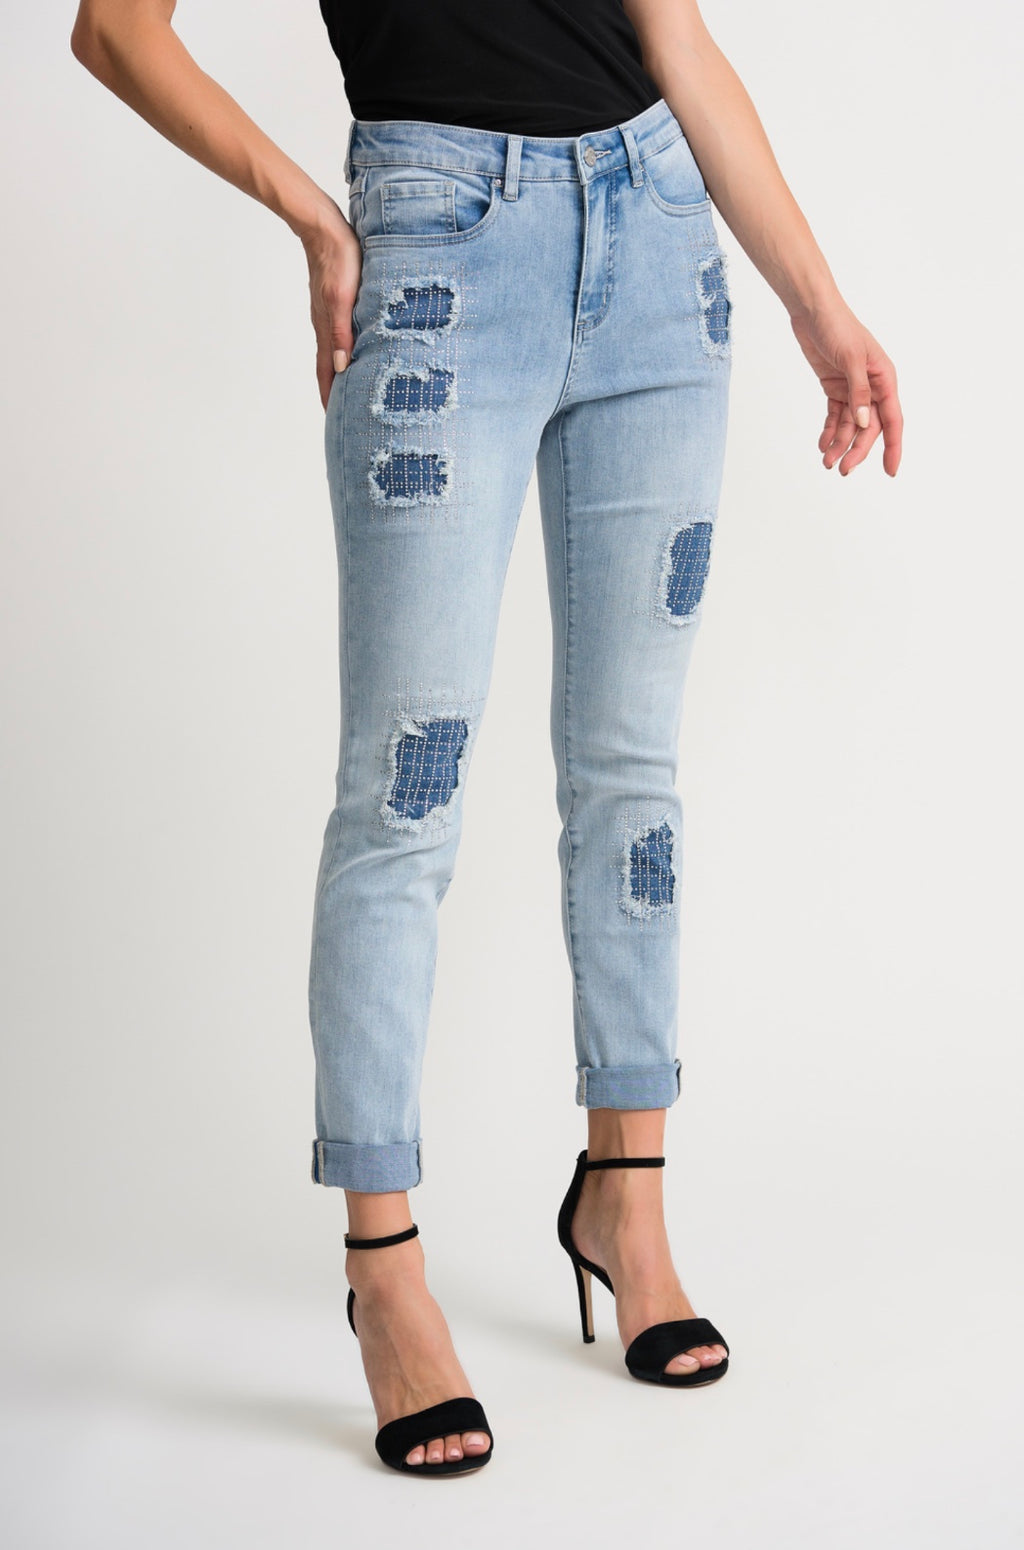 Jeans #202340